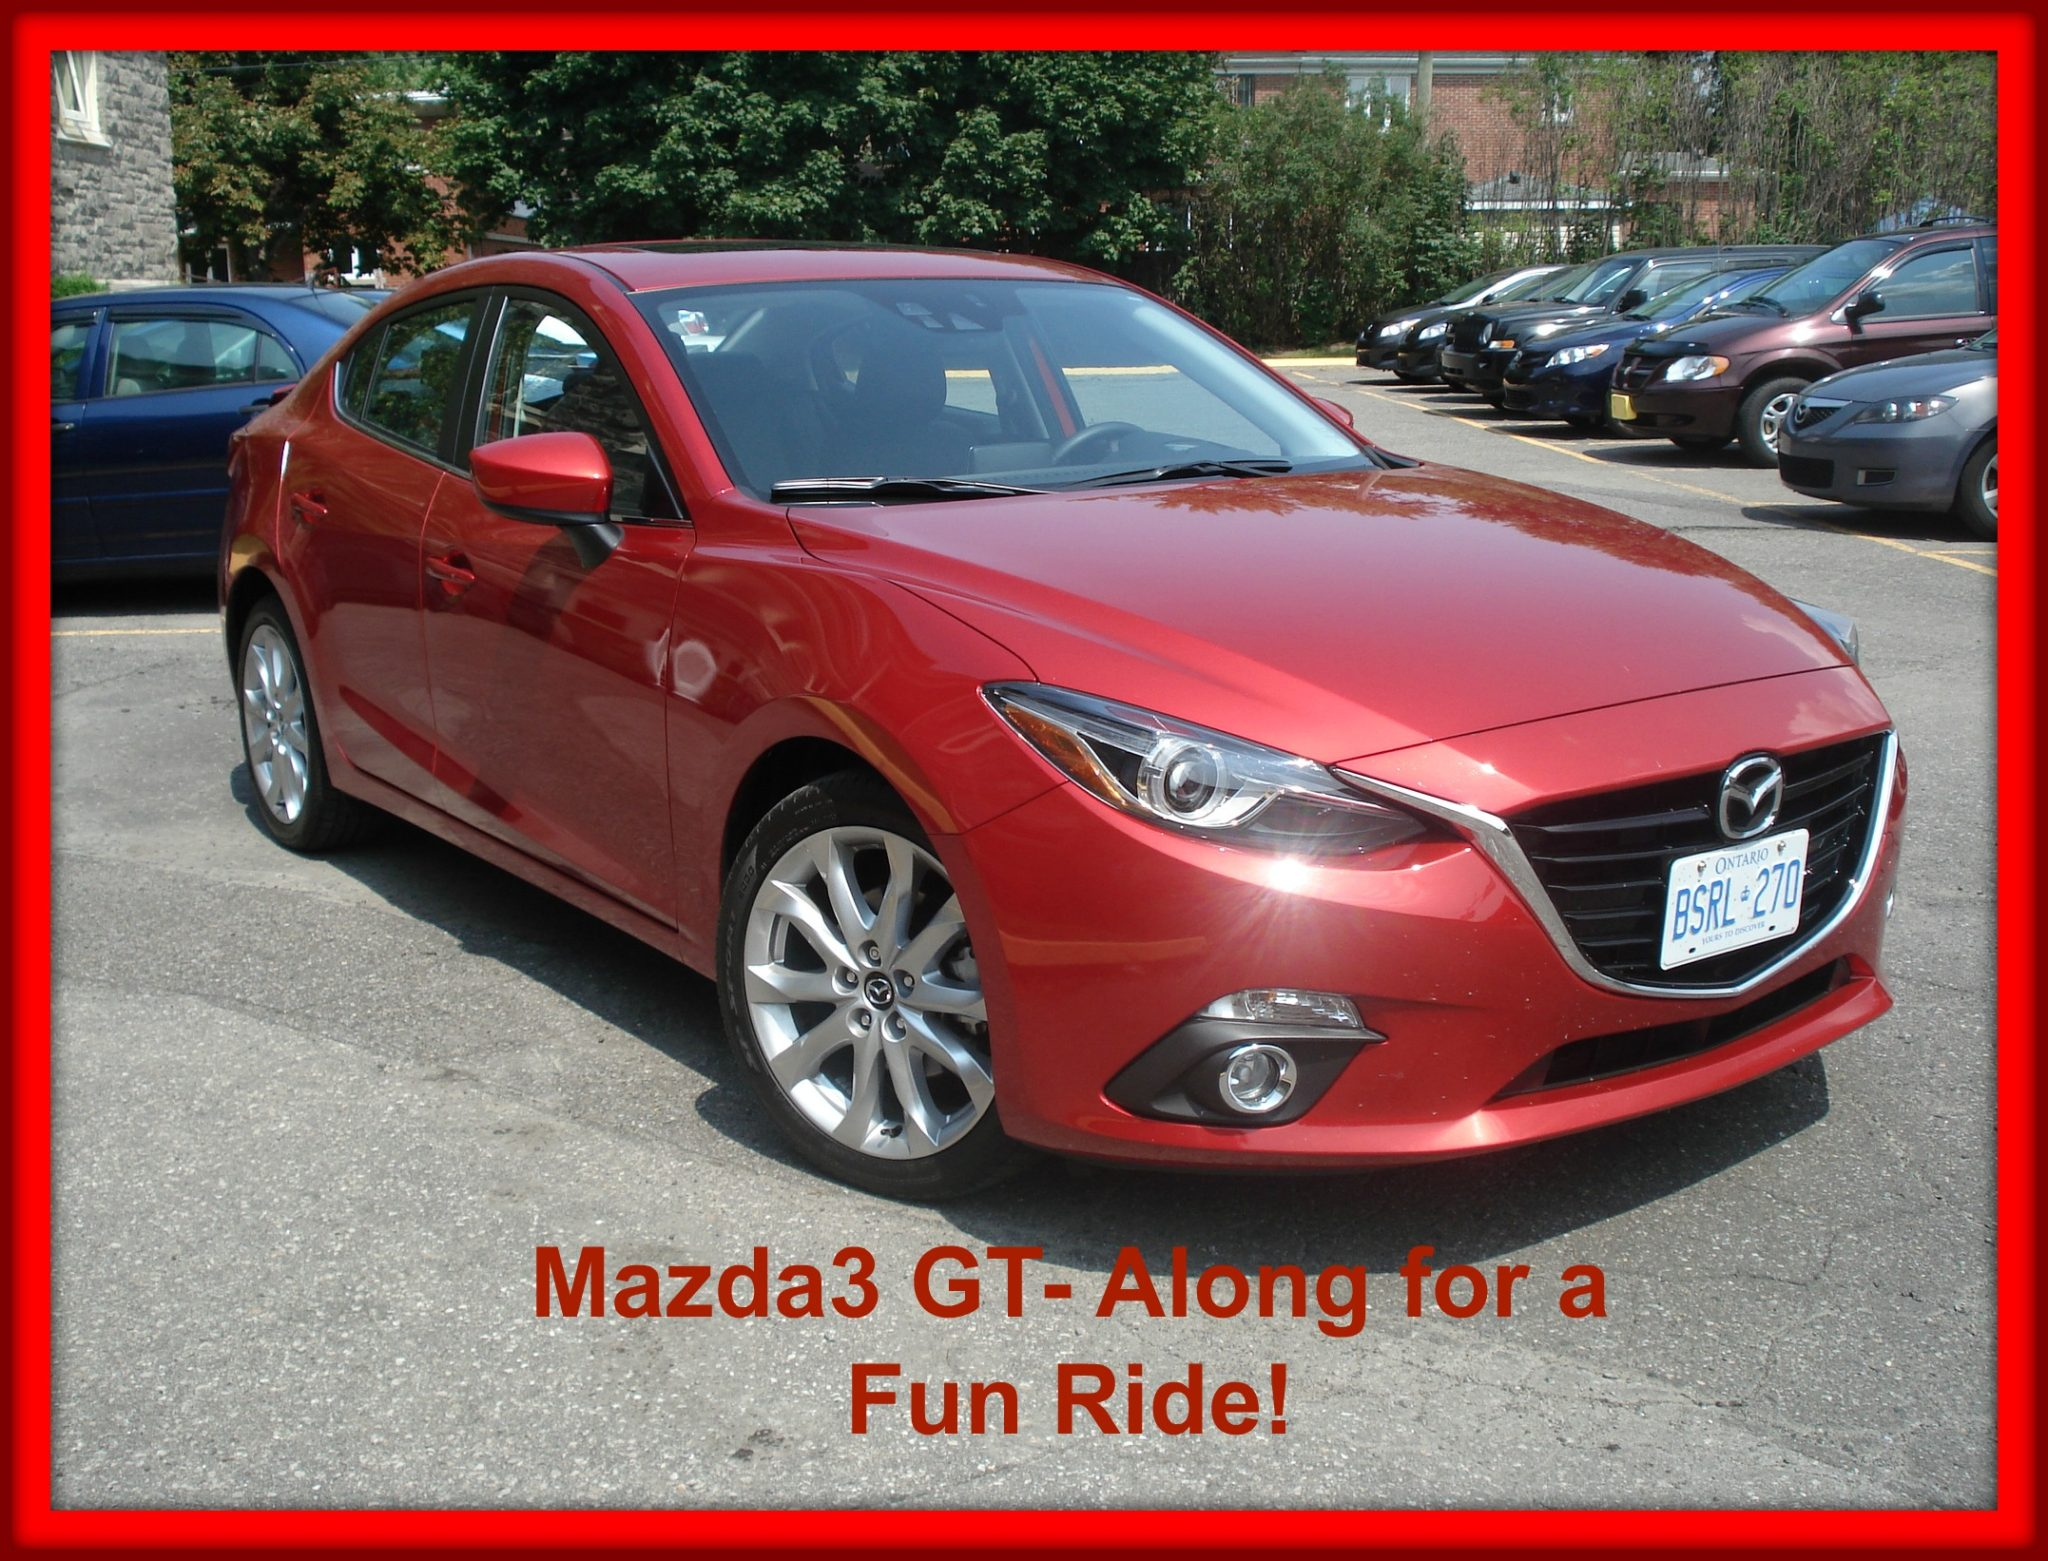 Mazda3 GT 2014- A Review